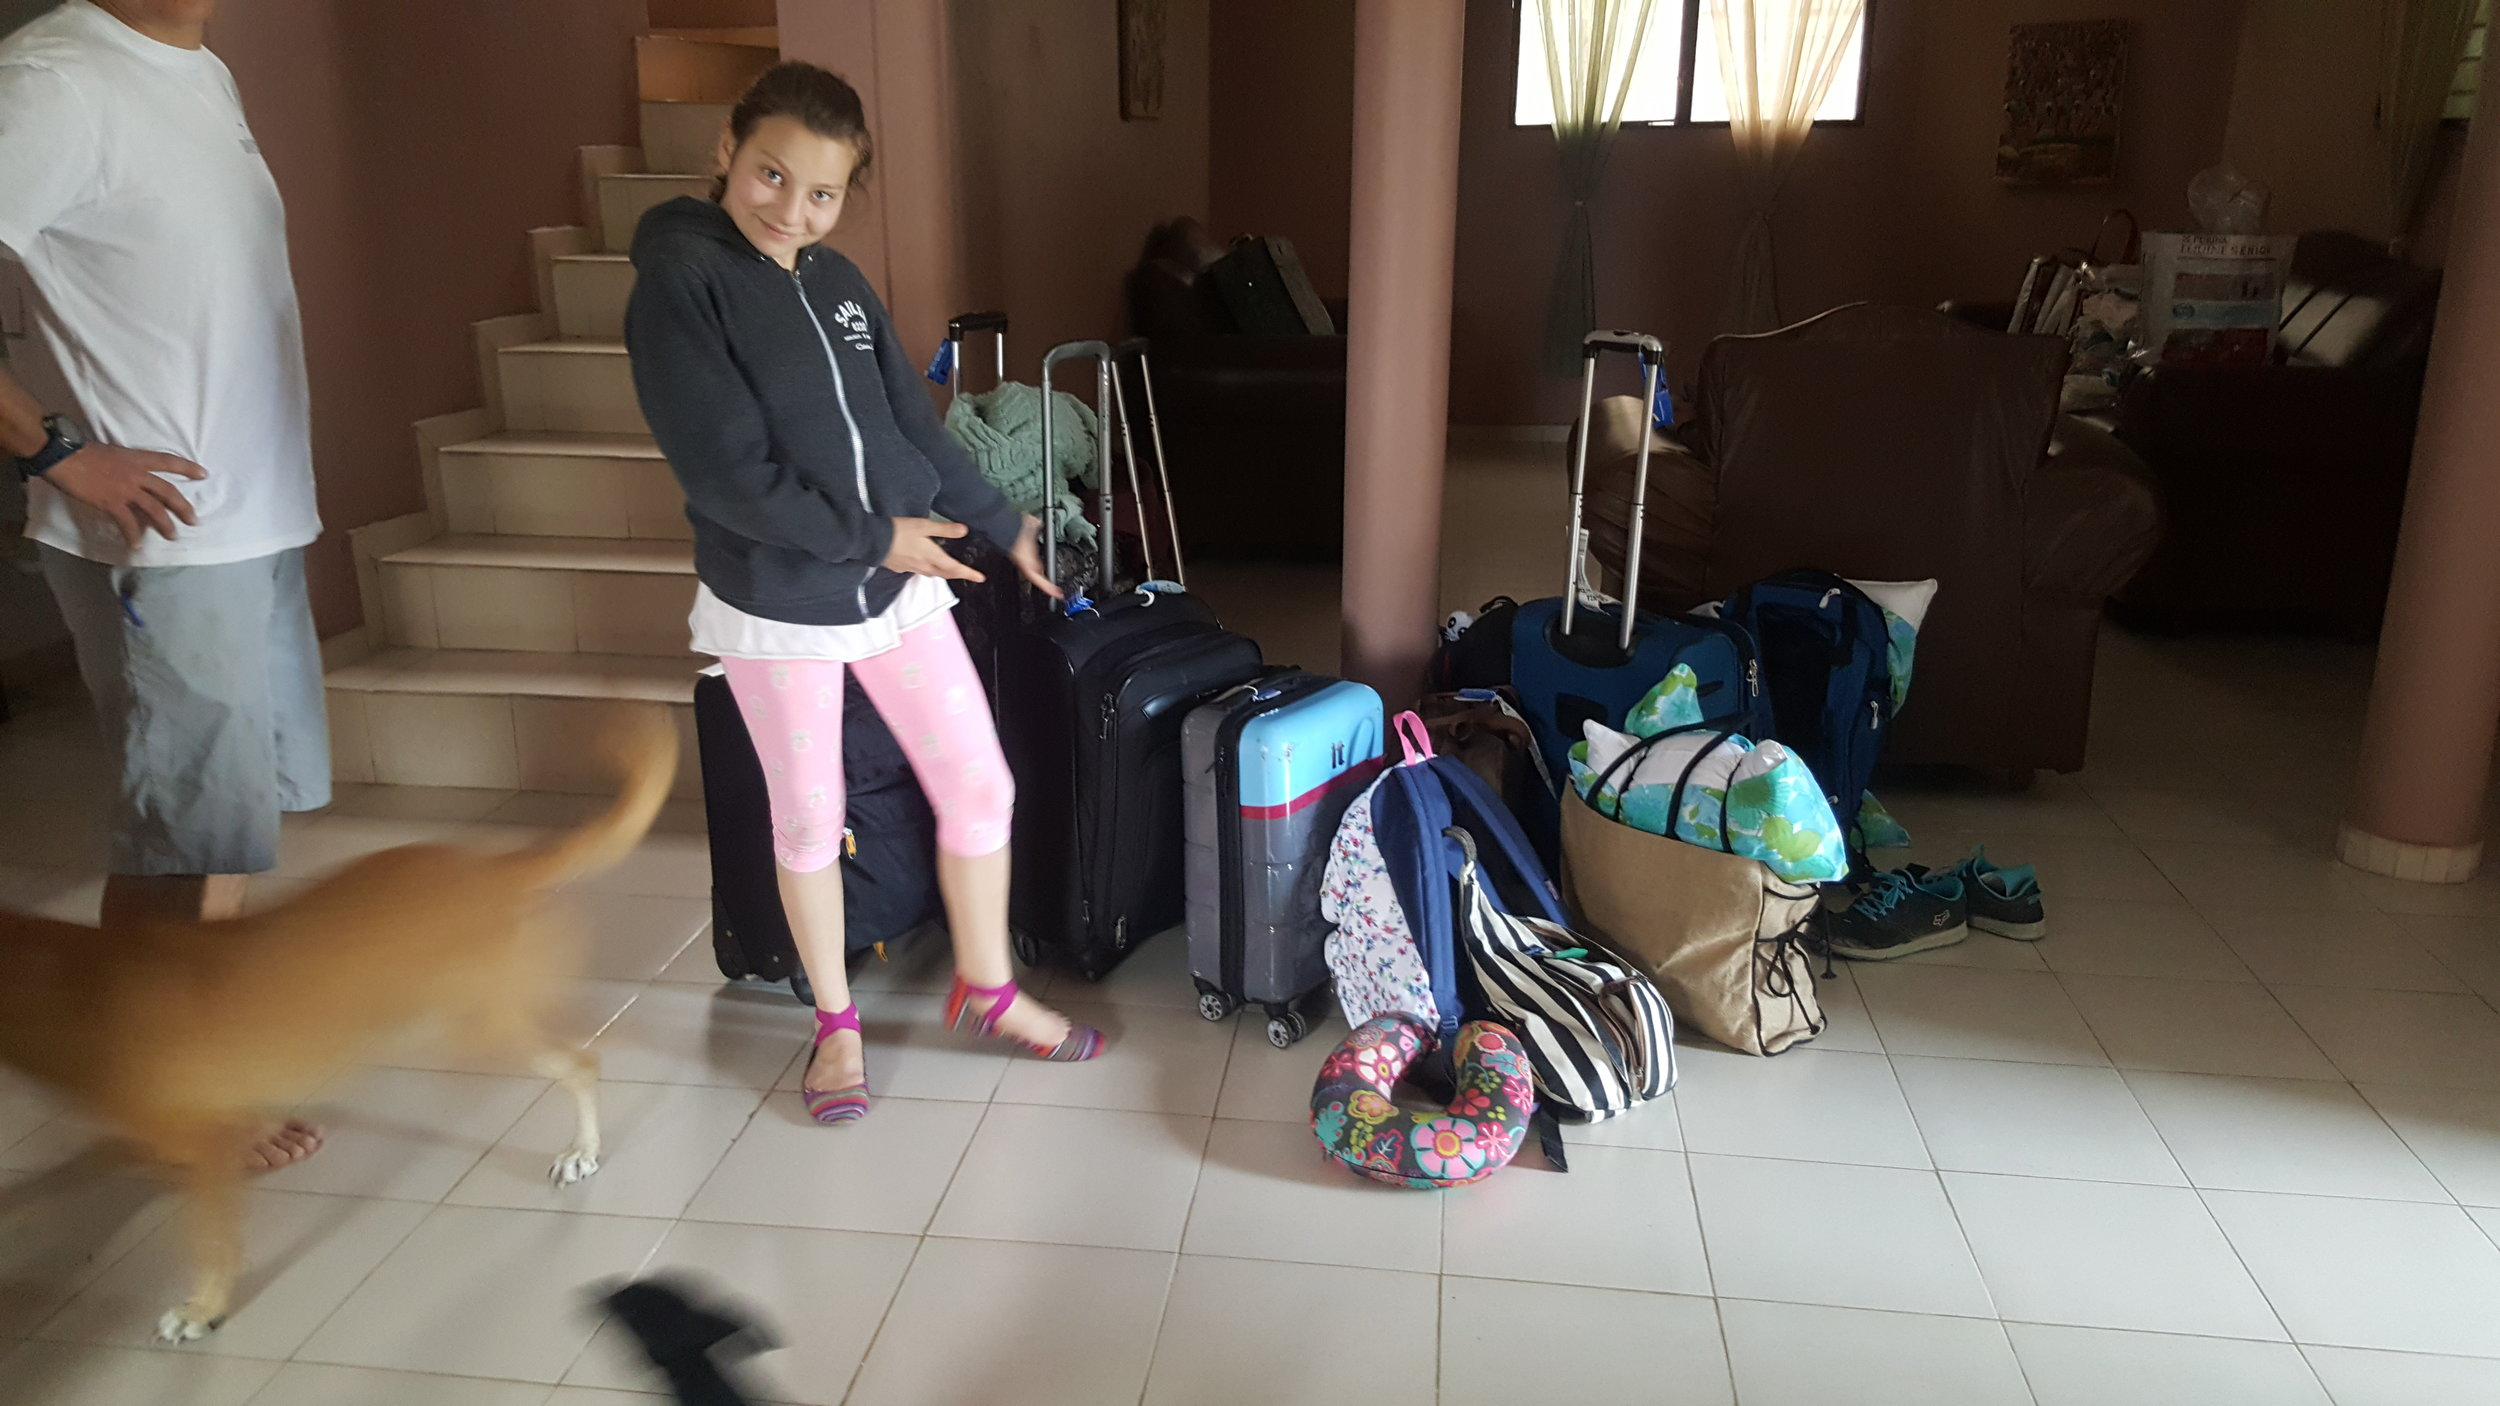 All of our luggage made it safely!